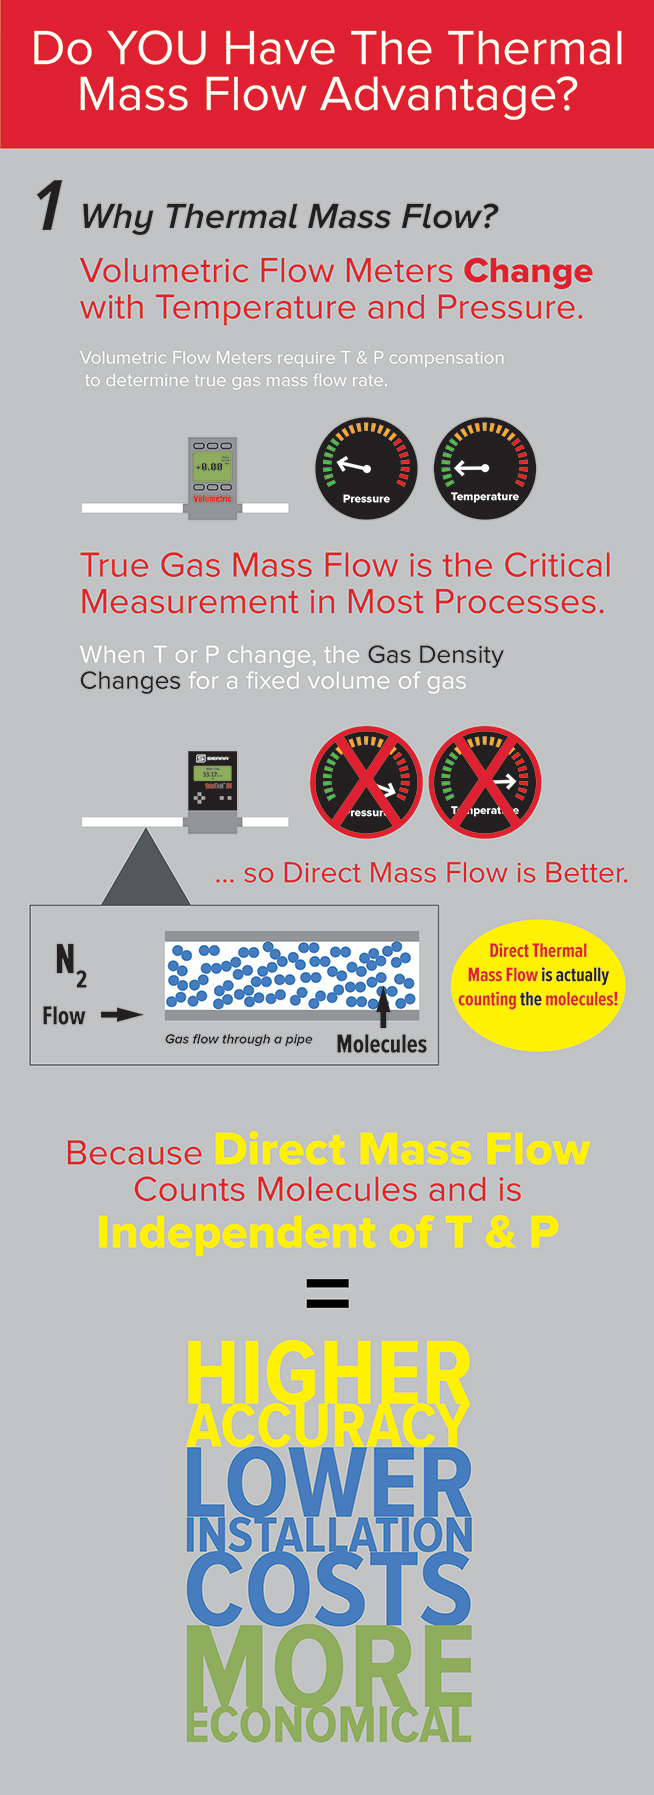 Do You Have the Thermal Mass Flow Advantage?